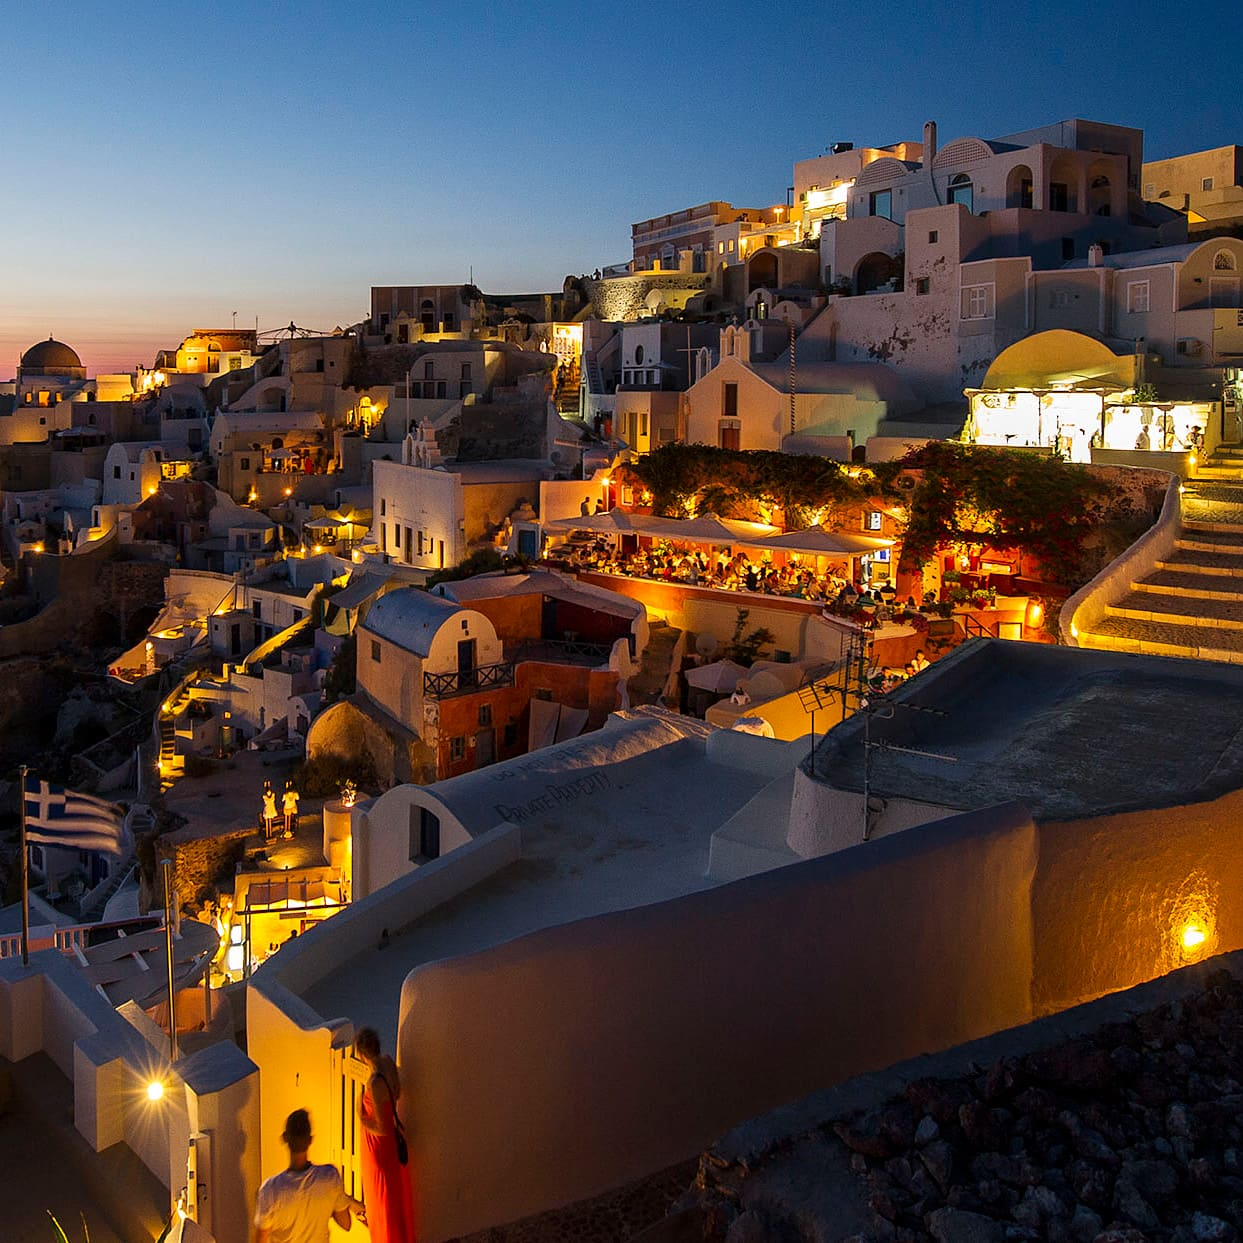 The buildings of the city of Santorini, Greece lit up at nighttime